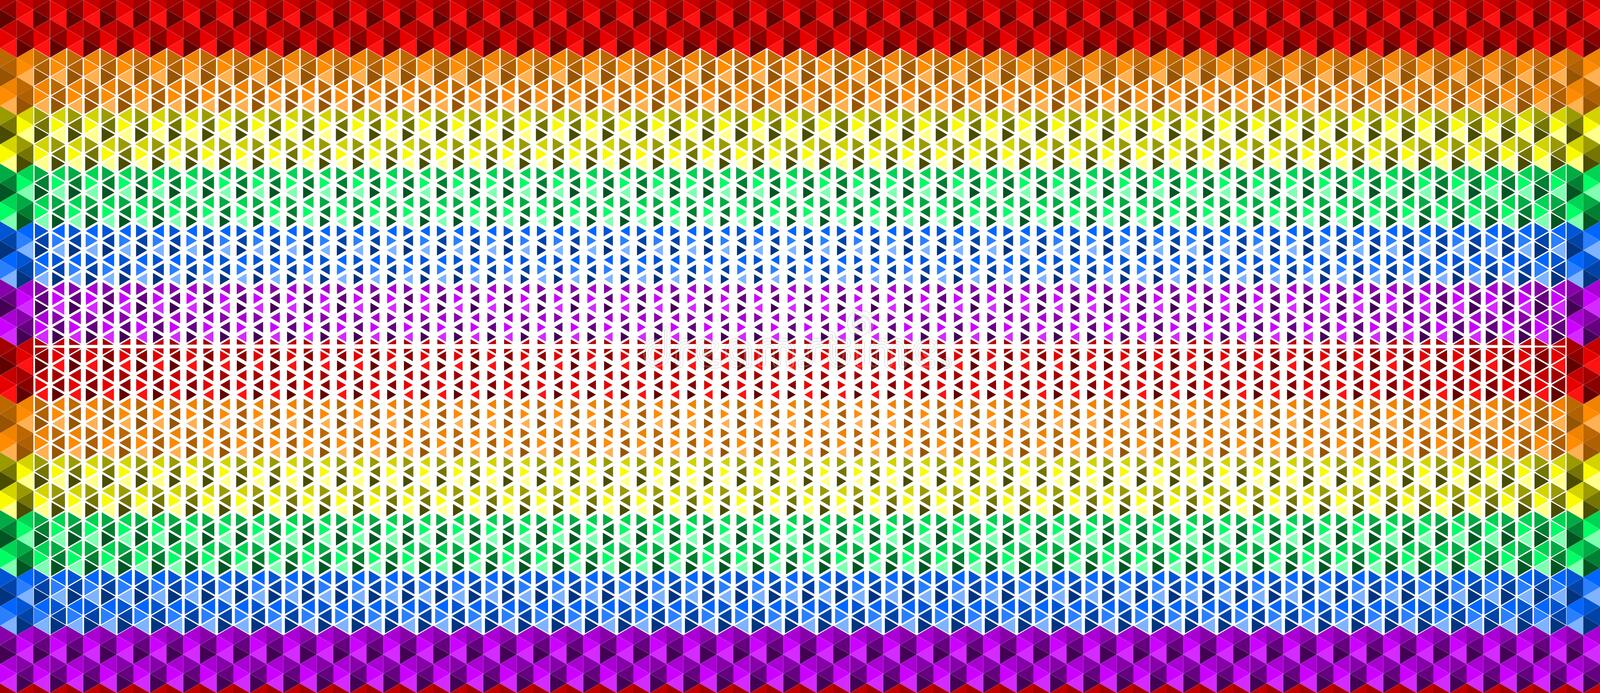 Colorful waving rainbow texture background of small triangle shapes, LGBTQ pride flag colors, horizontal seamless pattern. royalty free illustration